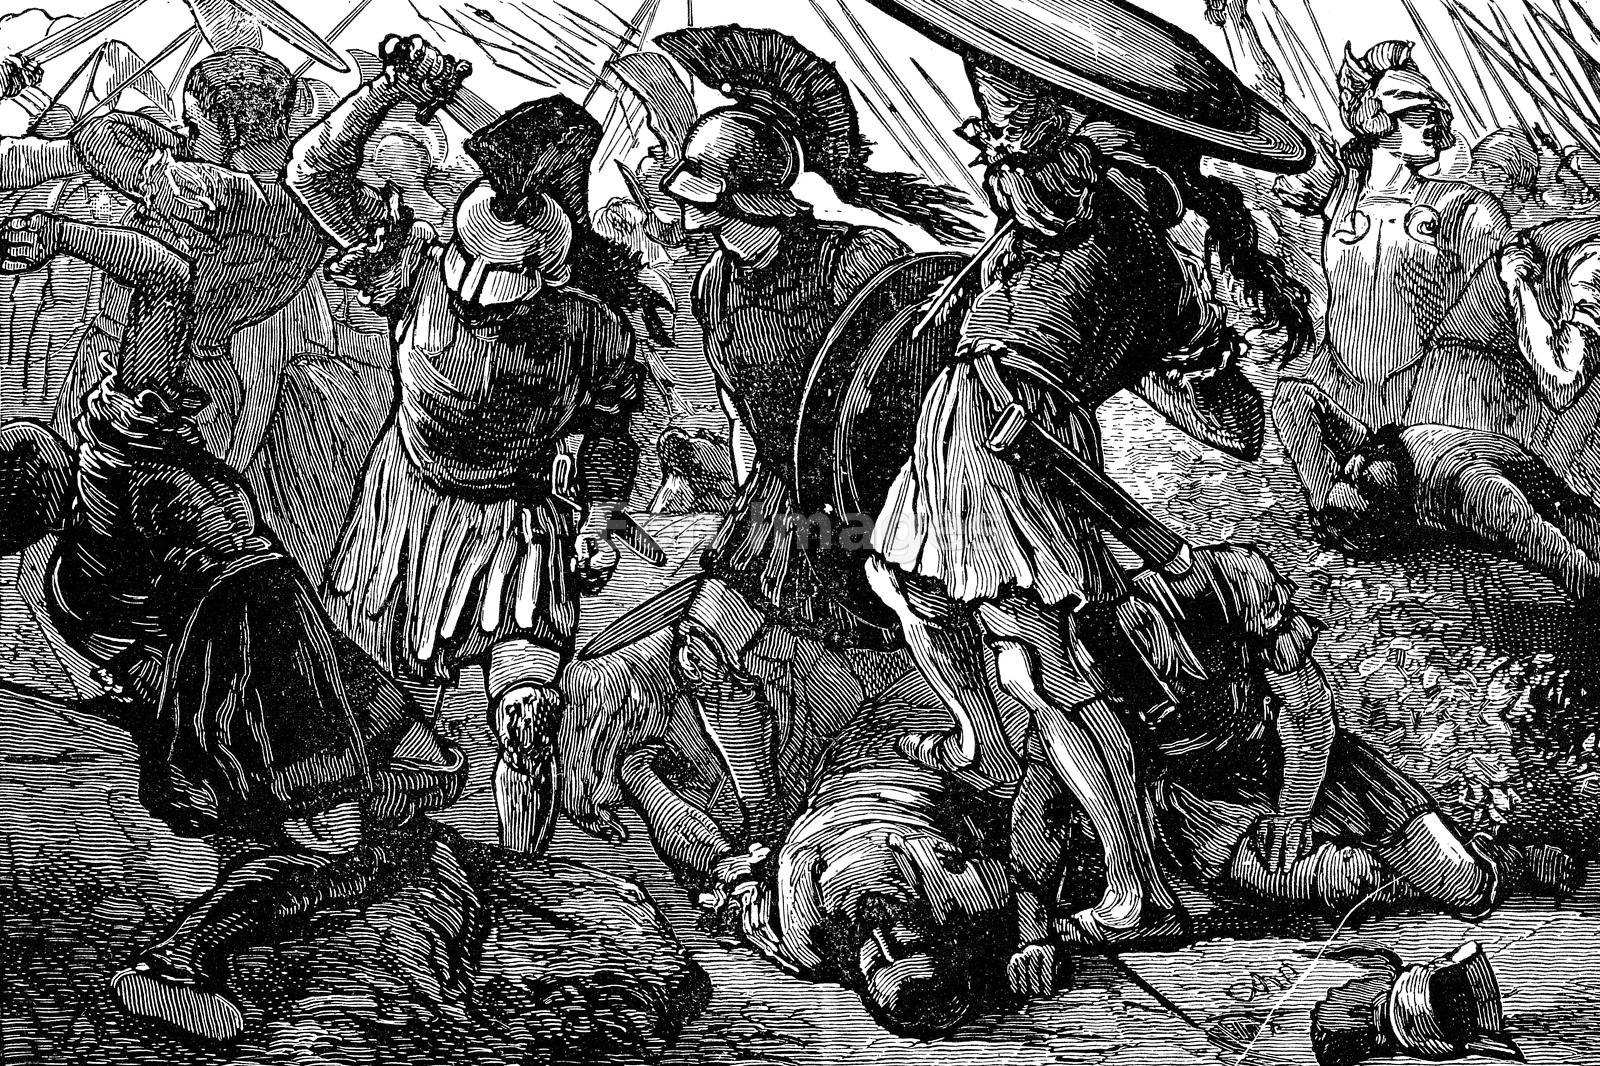 Thebans and Macedonians in battle